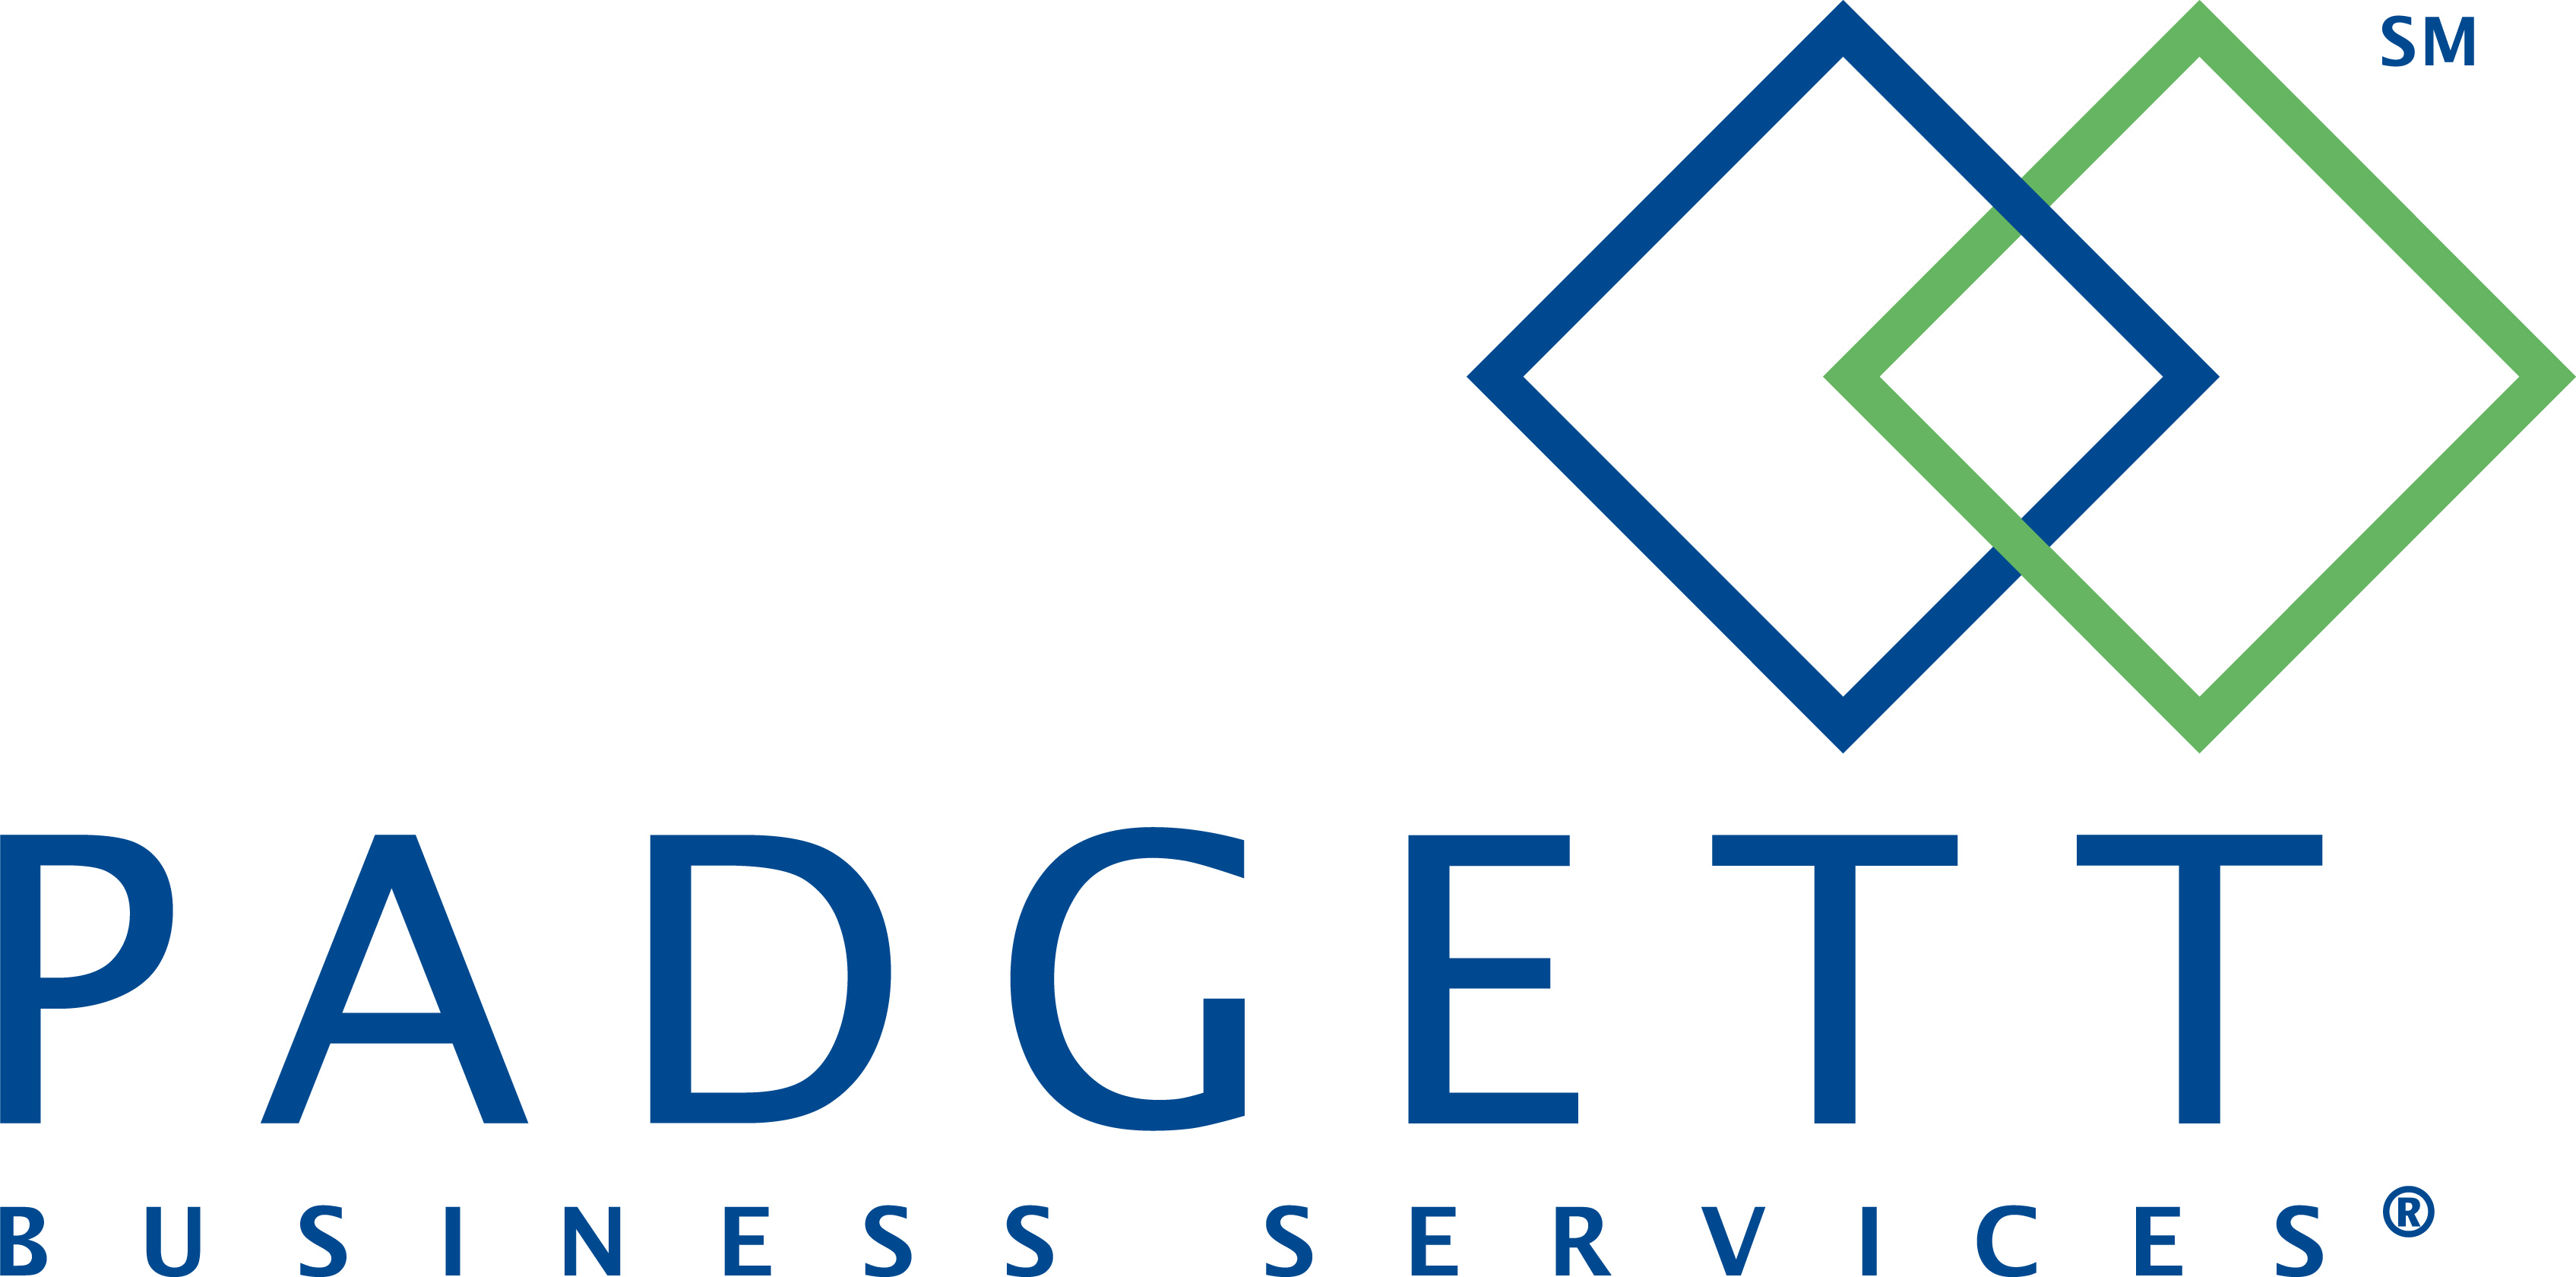 Padgett Business Services is a Gold Sponsor for the Moon Area Instrumental Music Program